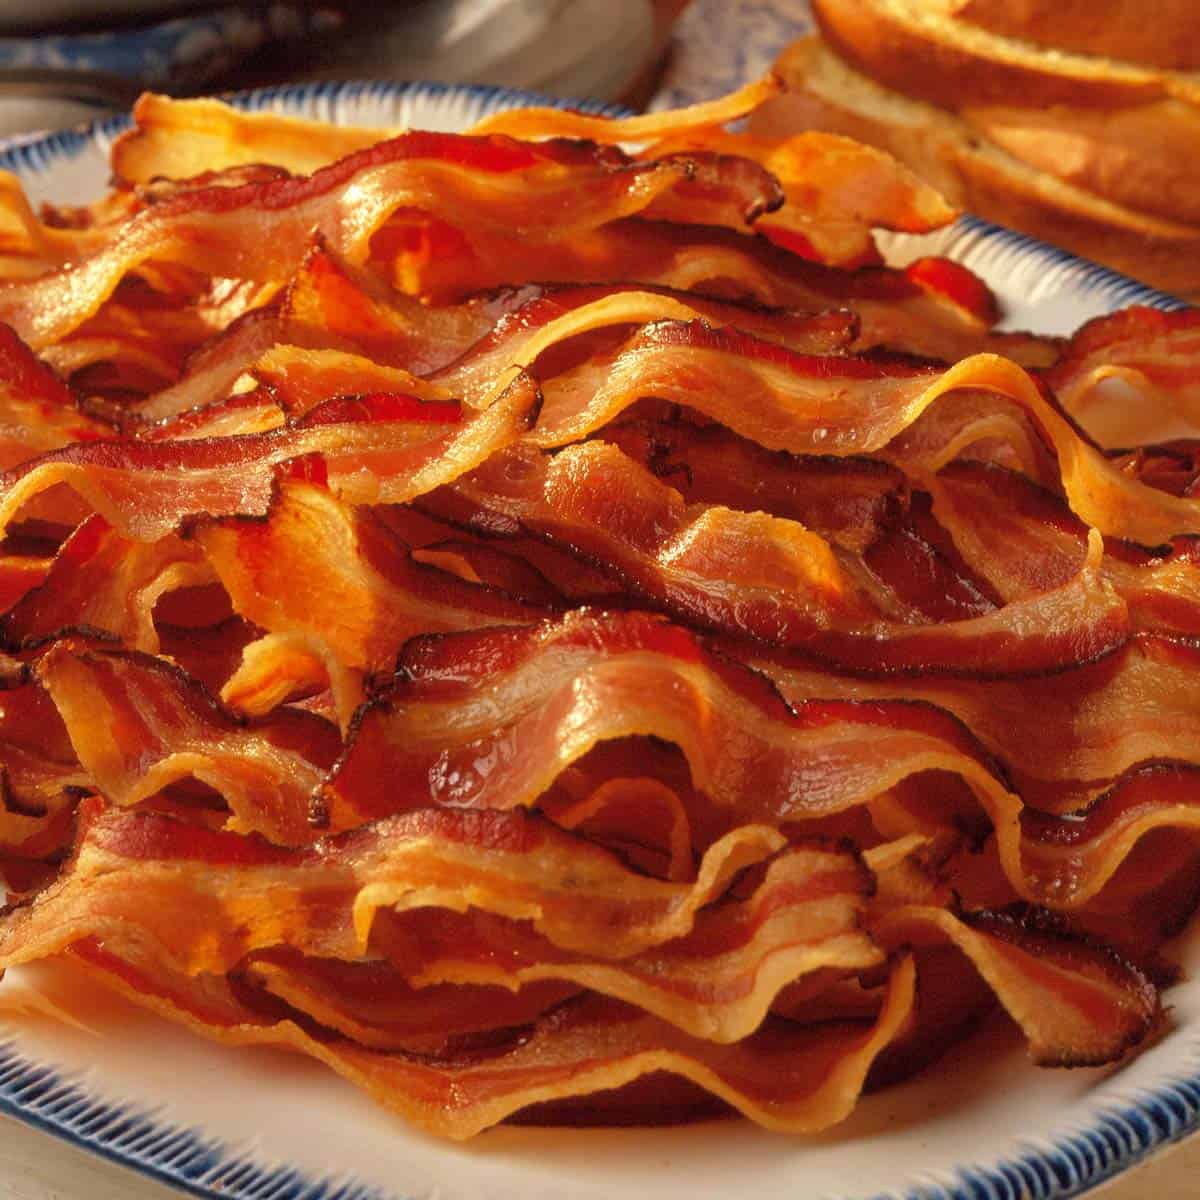 Bacon nutritional facts